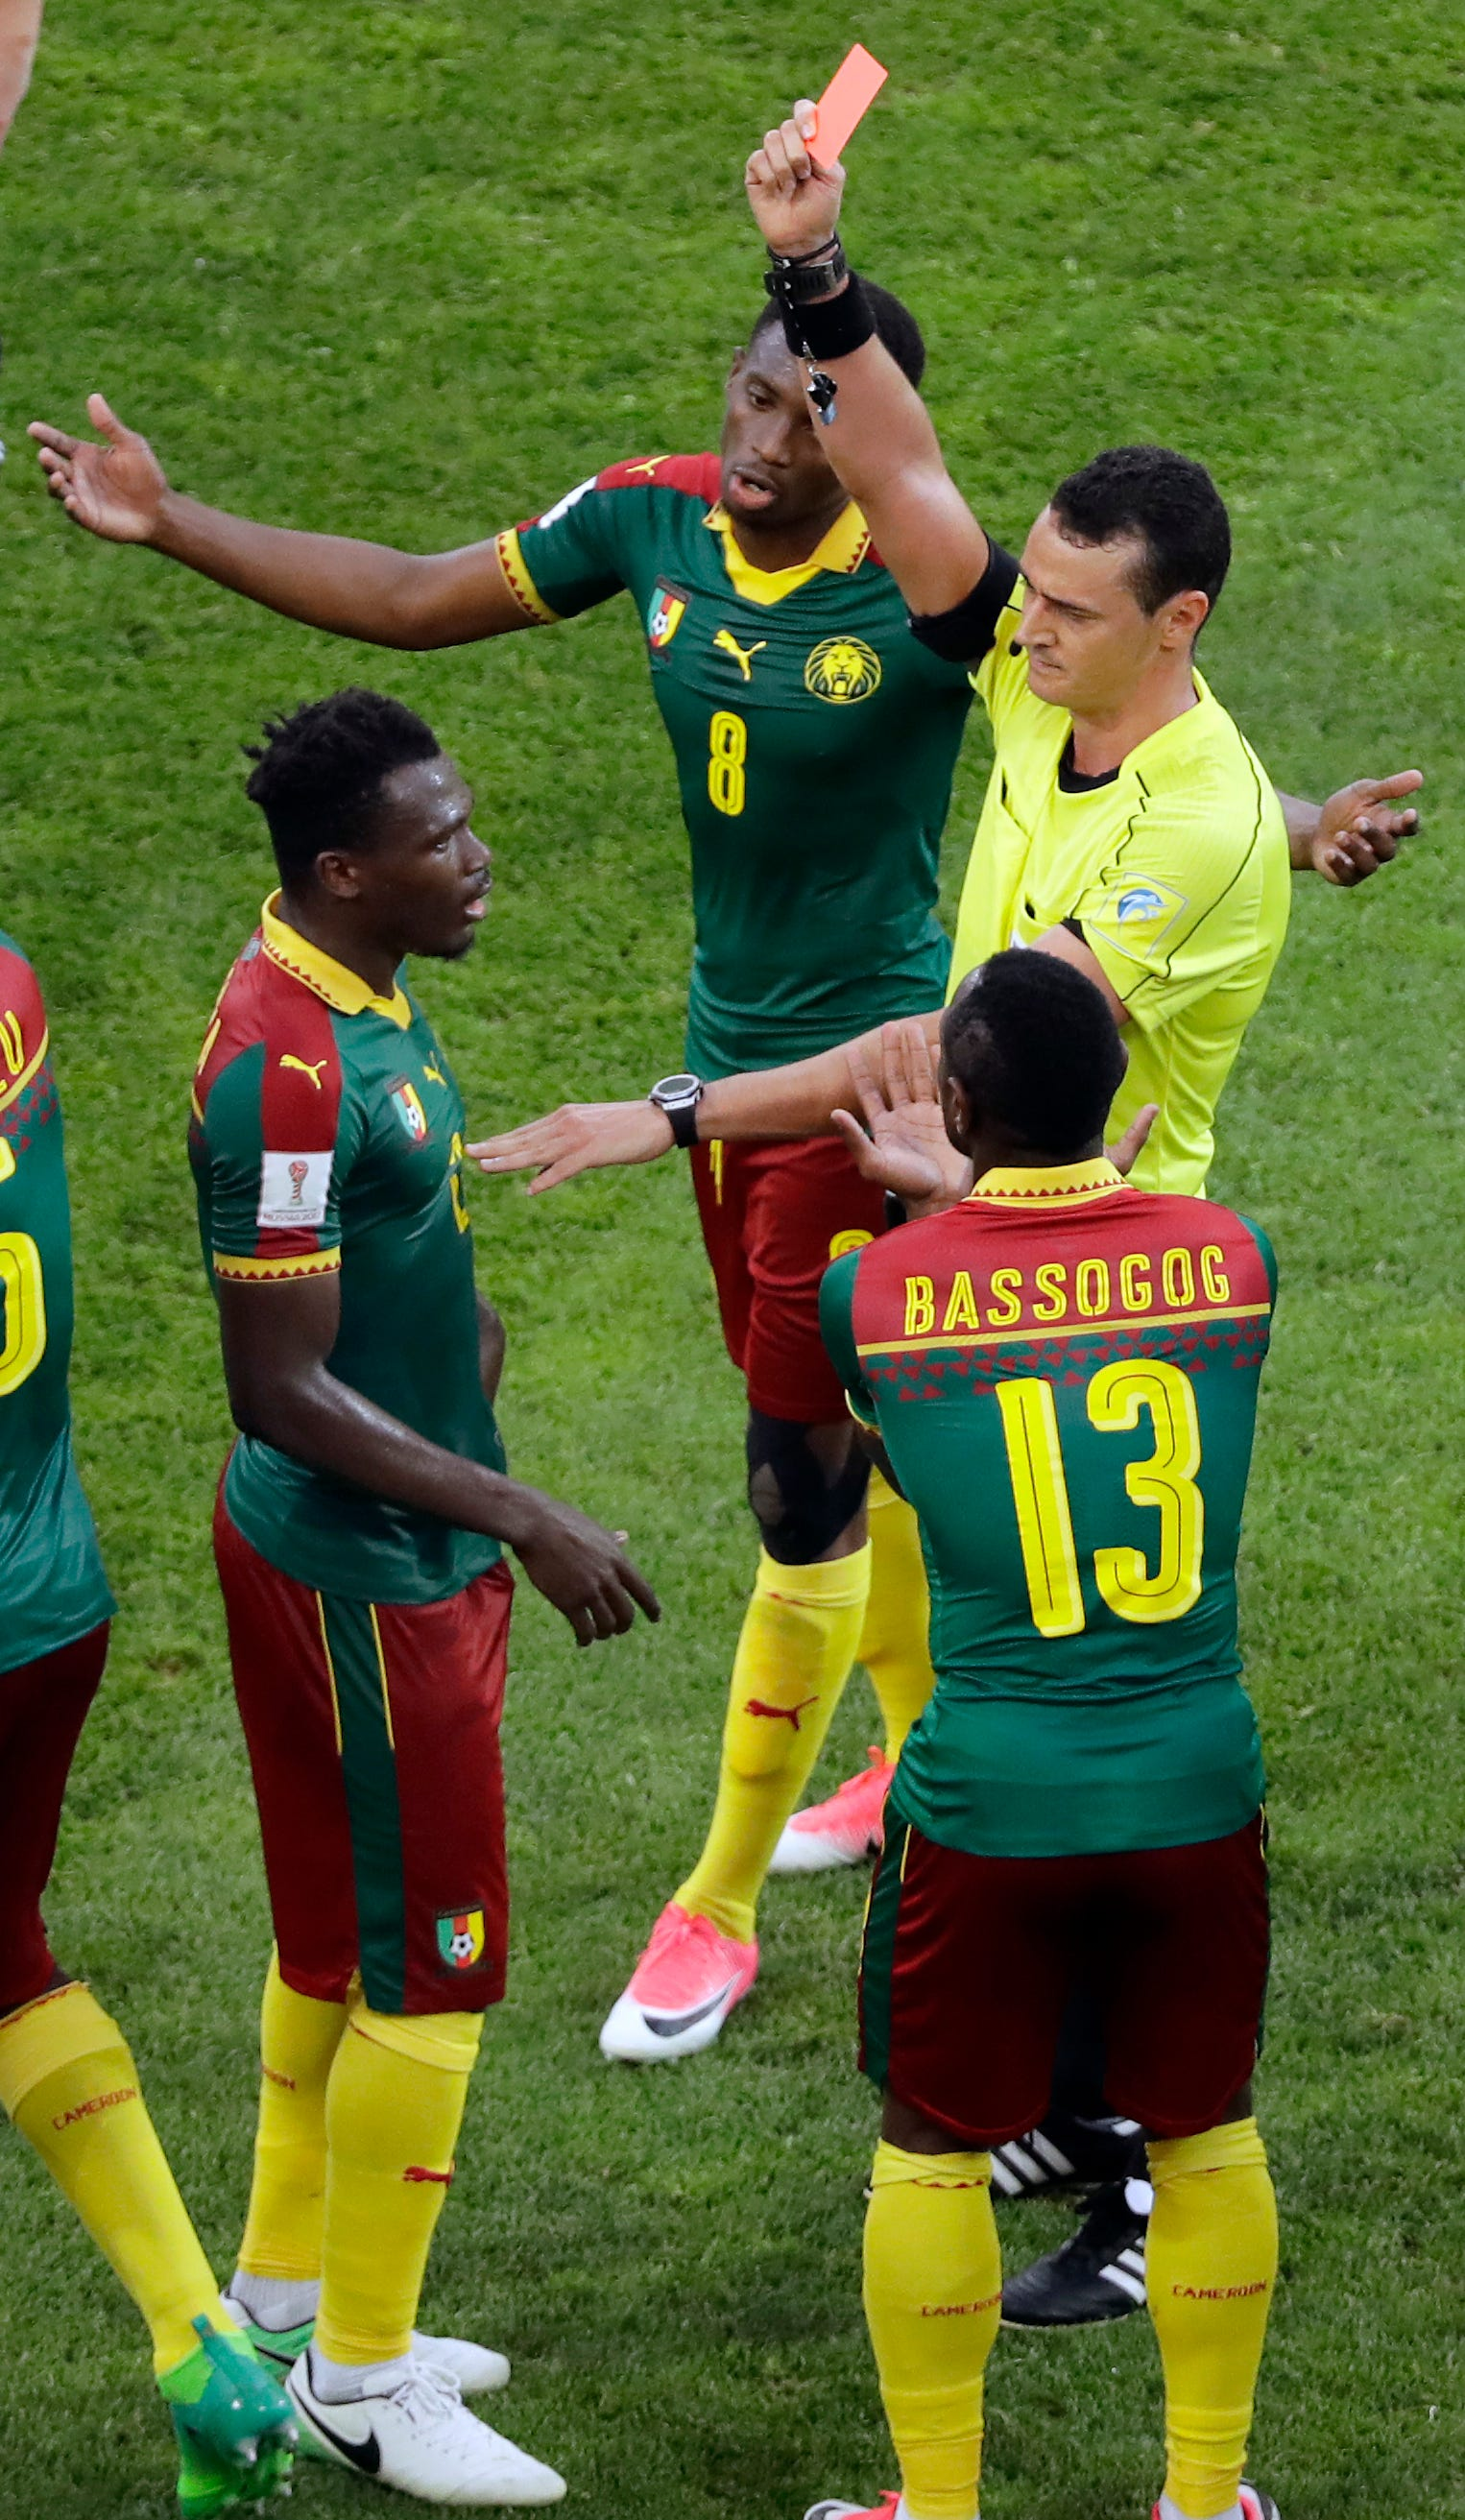 Video review used to show red card to Cameroon defender